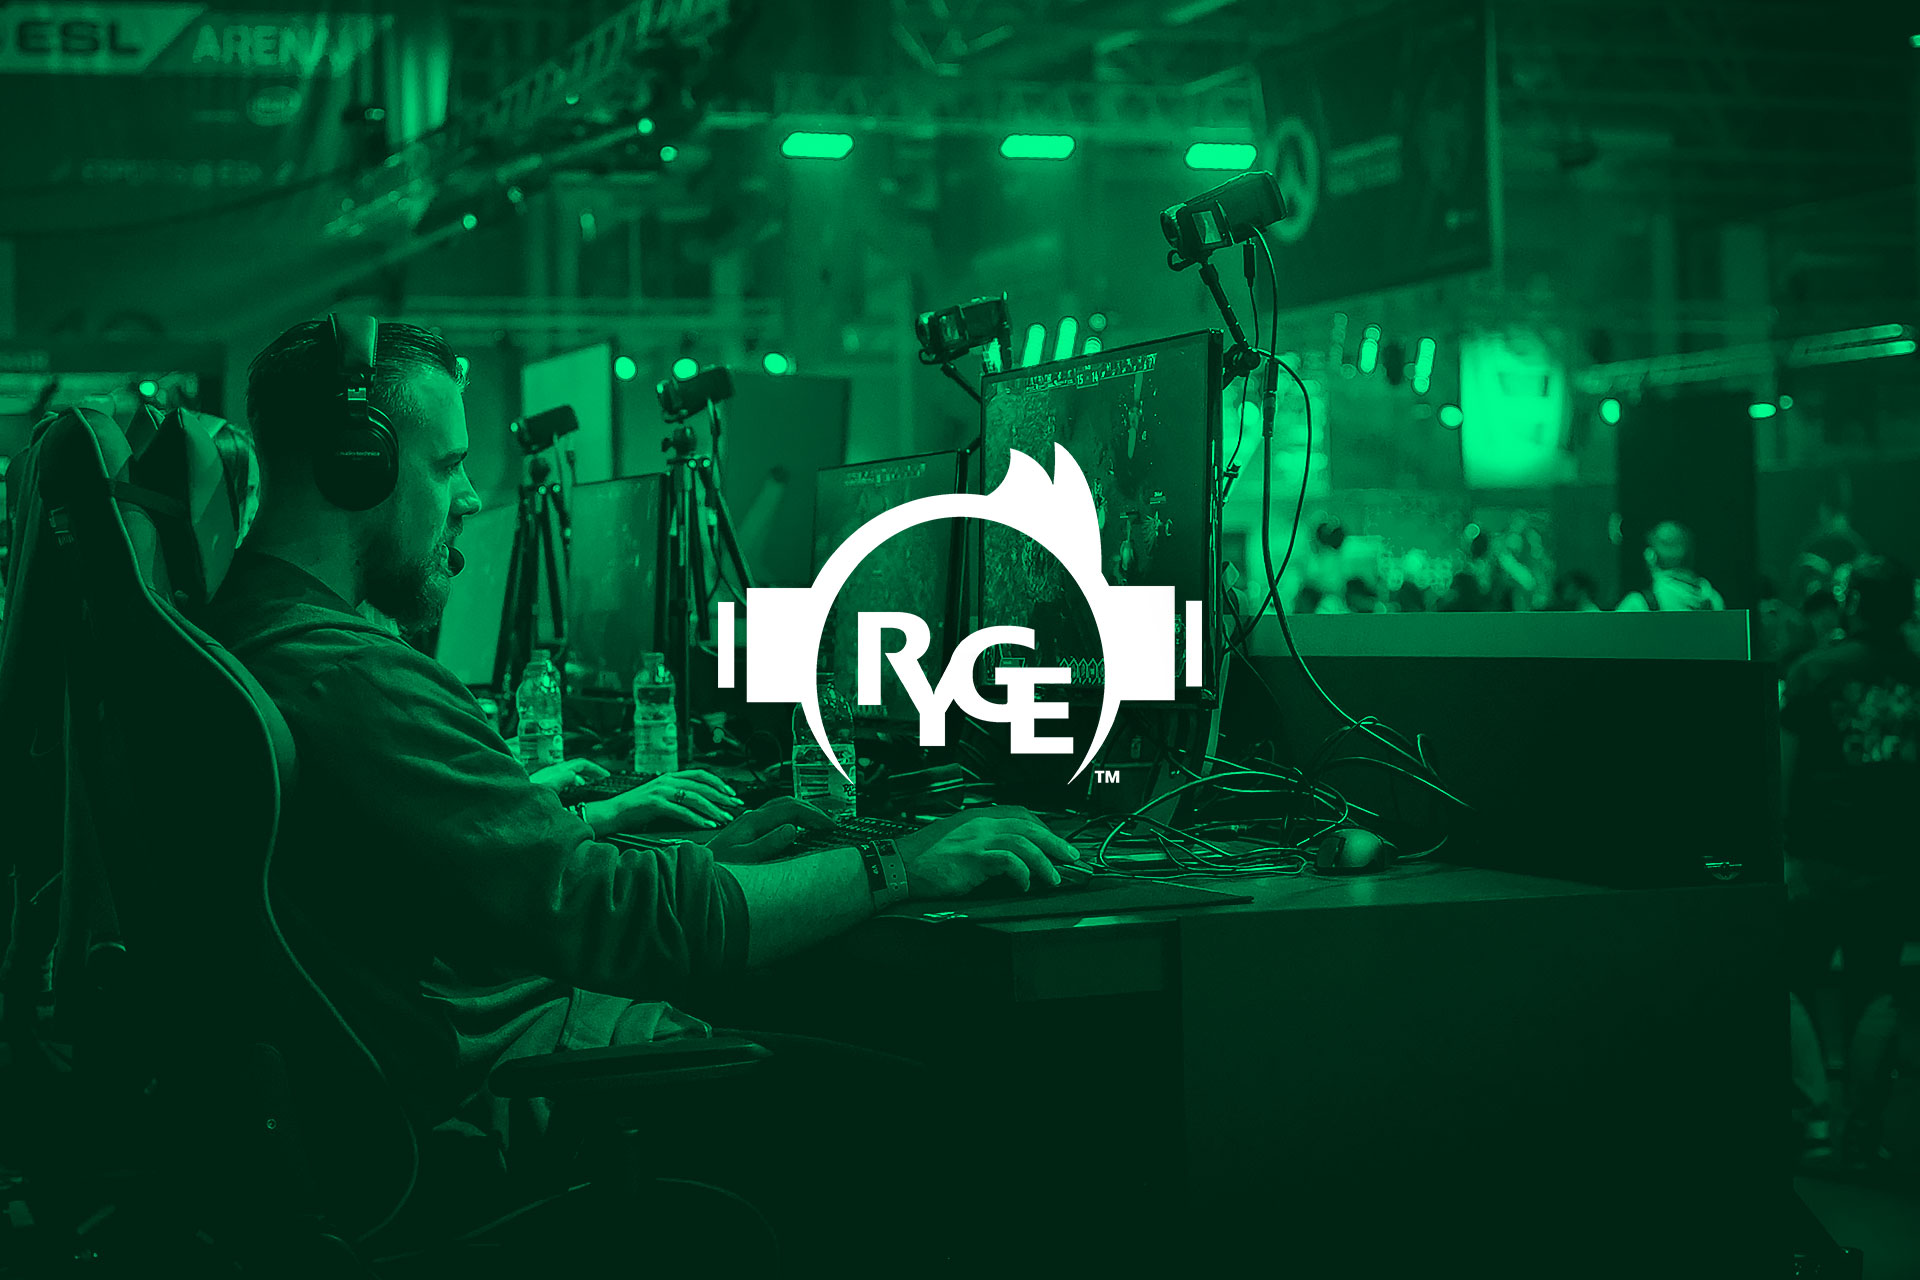 raise-your-game-esports-orfi-media-project